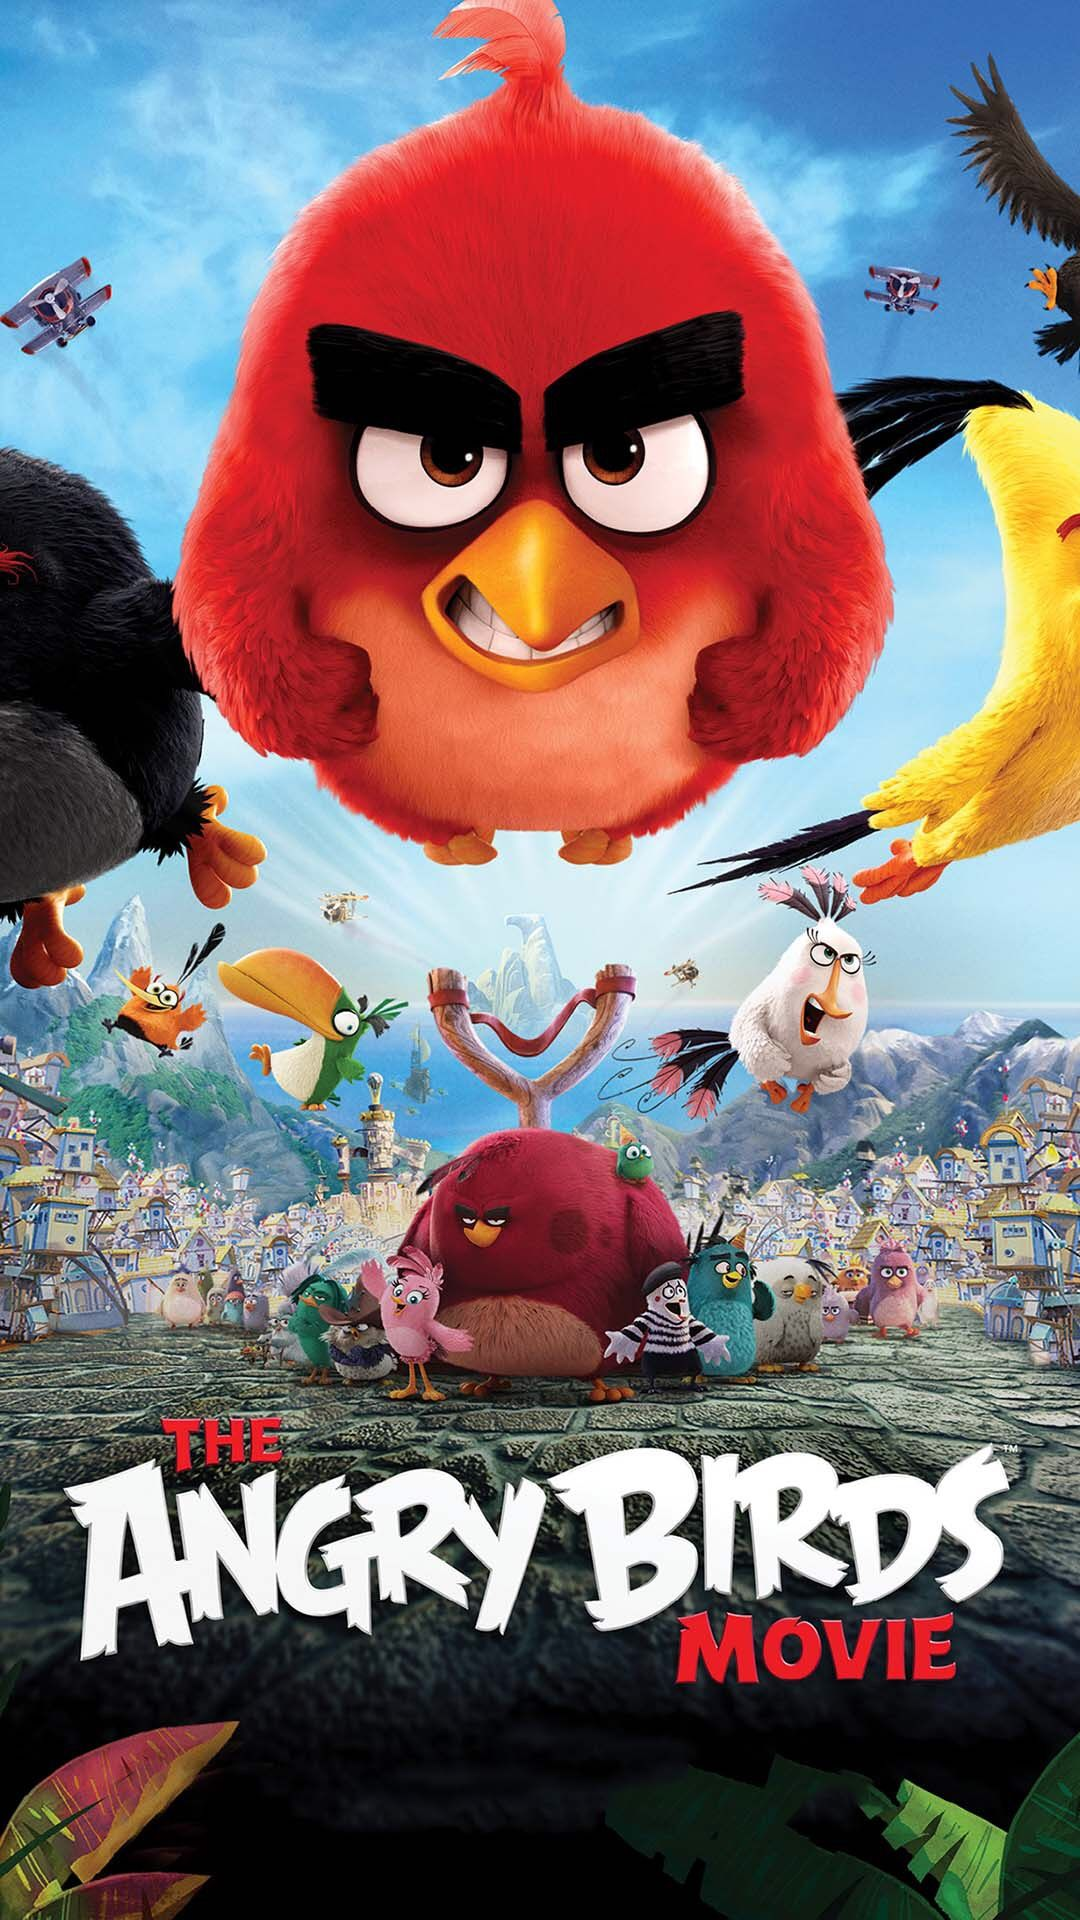 Angry Birds Movie Angry Birds Full Movie, Anry Birds, - Angry Birds 2016 Poster , HD Wallpaper & Backgrounds